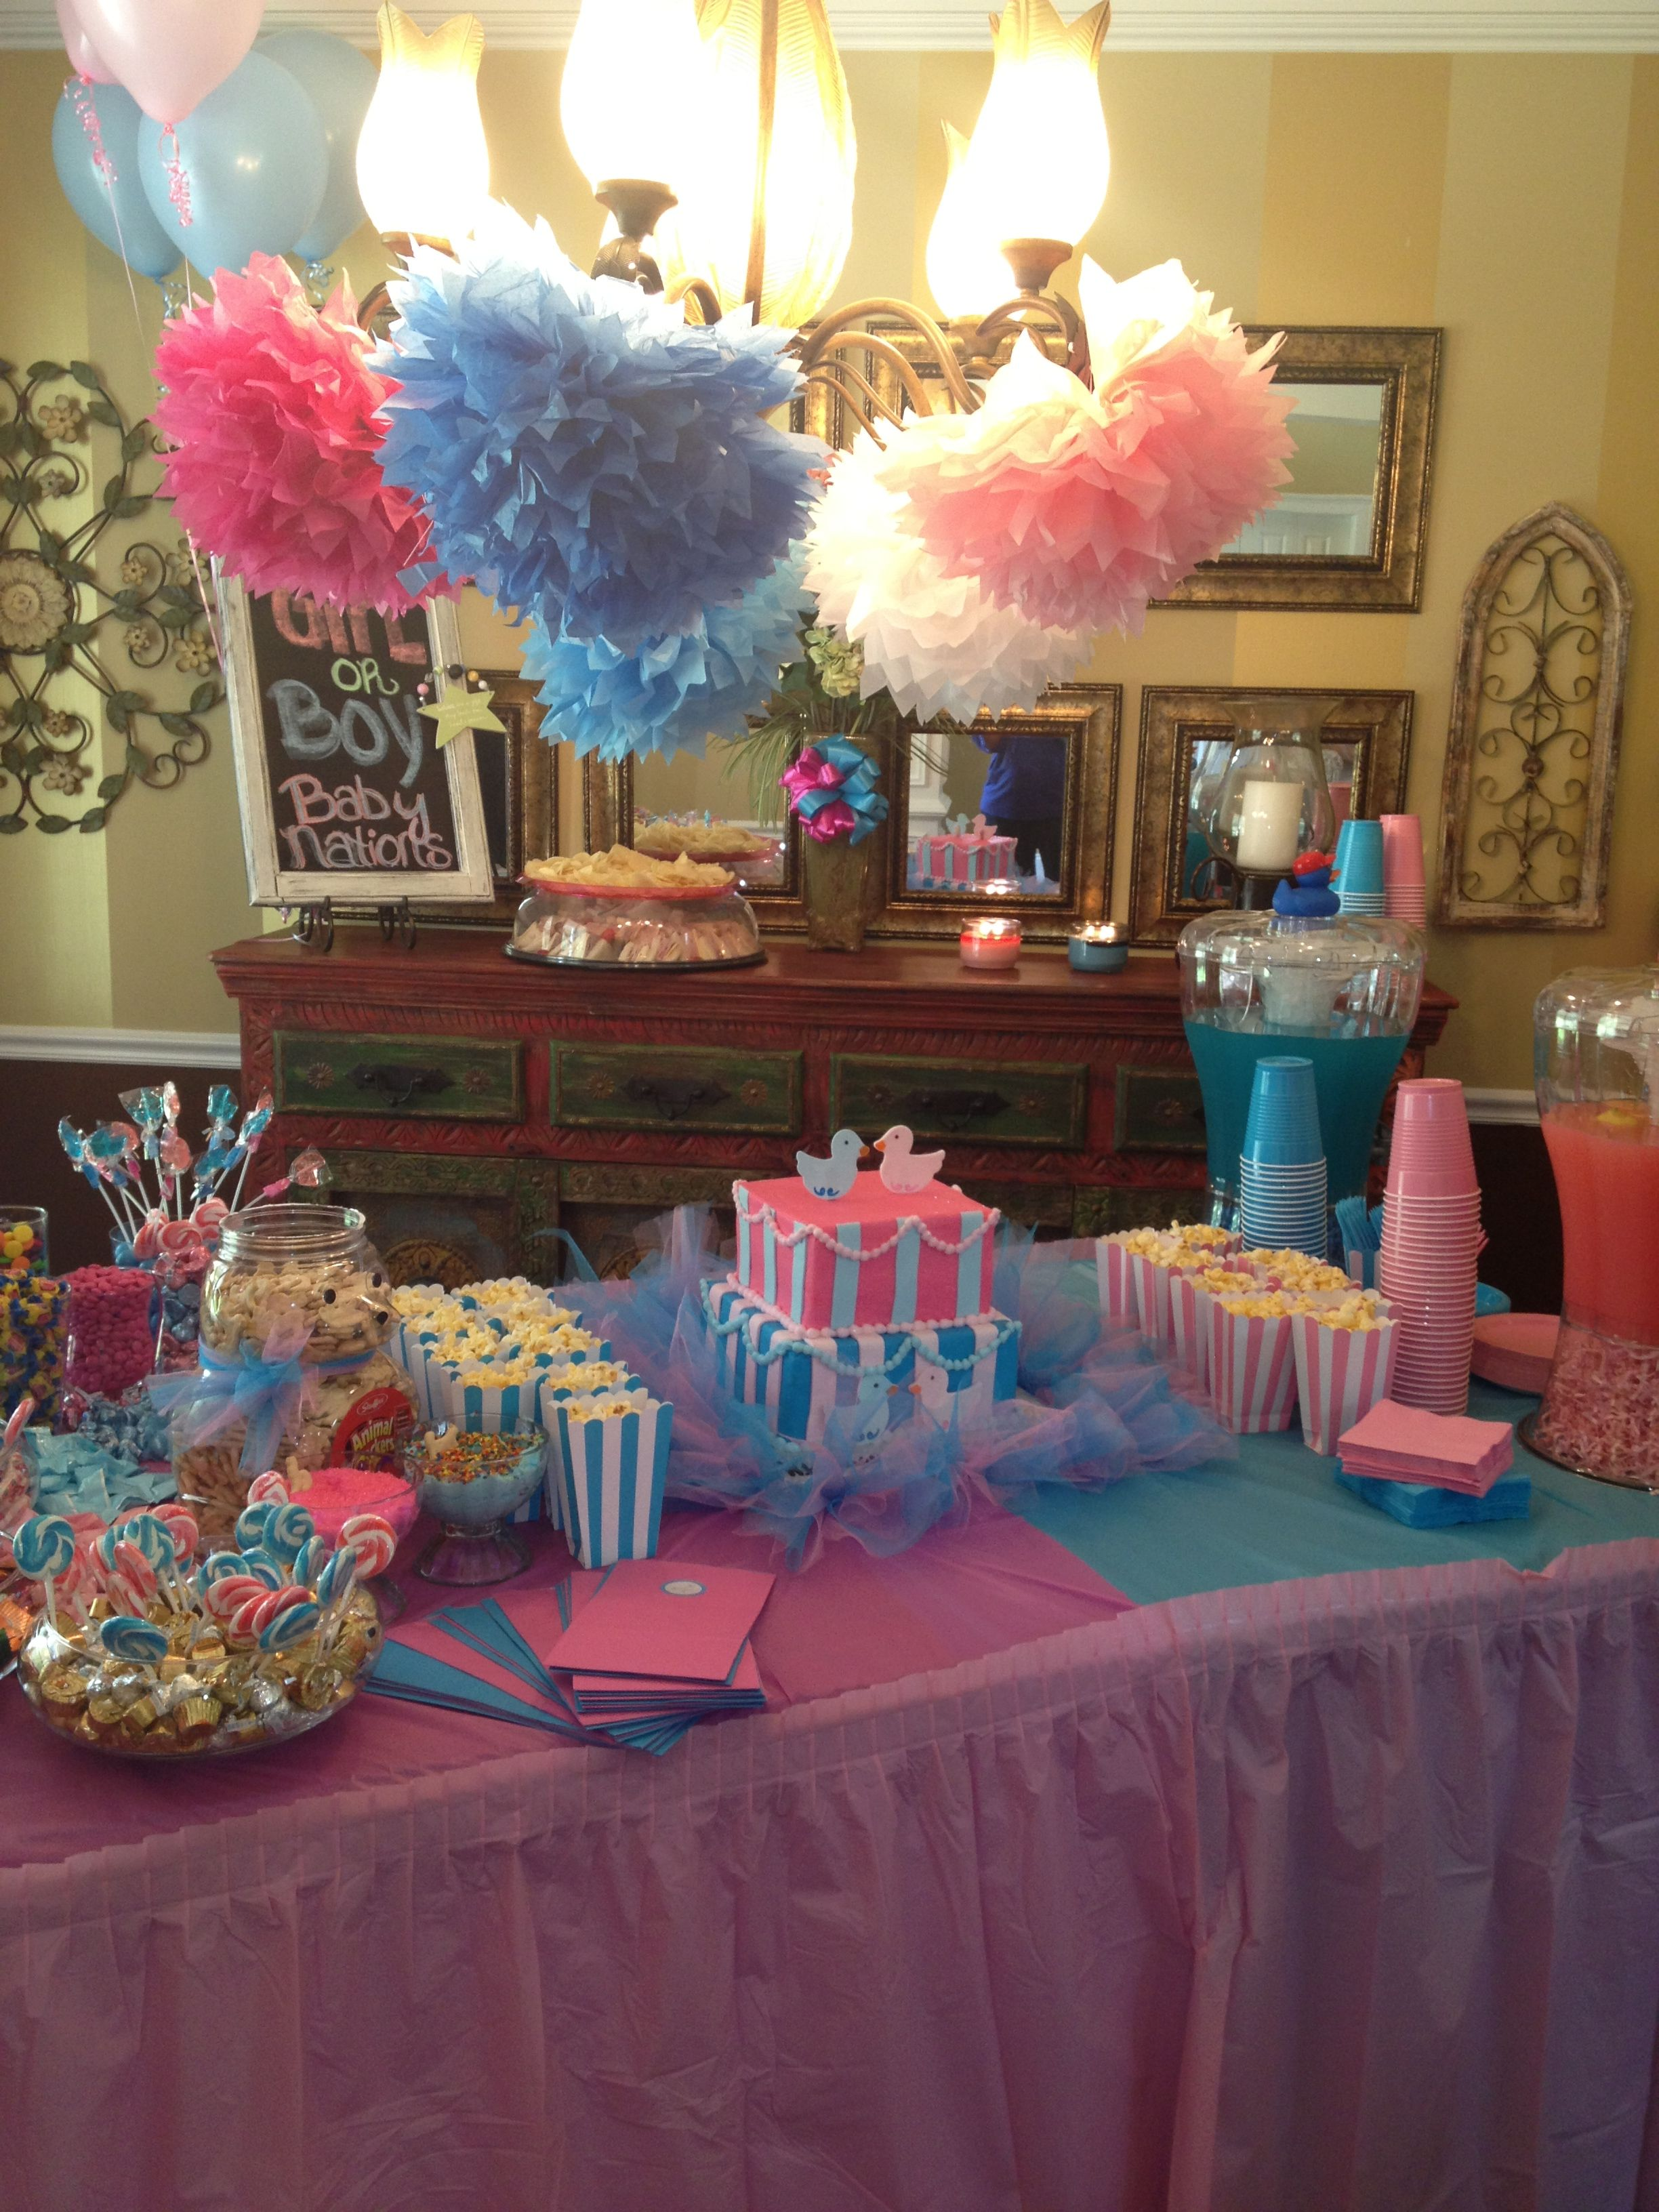 Gender Reveal Table Ideas Pink And Blue Punch Gender Reveal Party Decorations Gender Reveal Decorations Gender Reveal Party Food